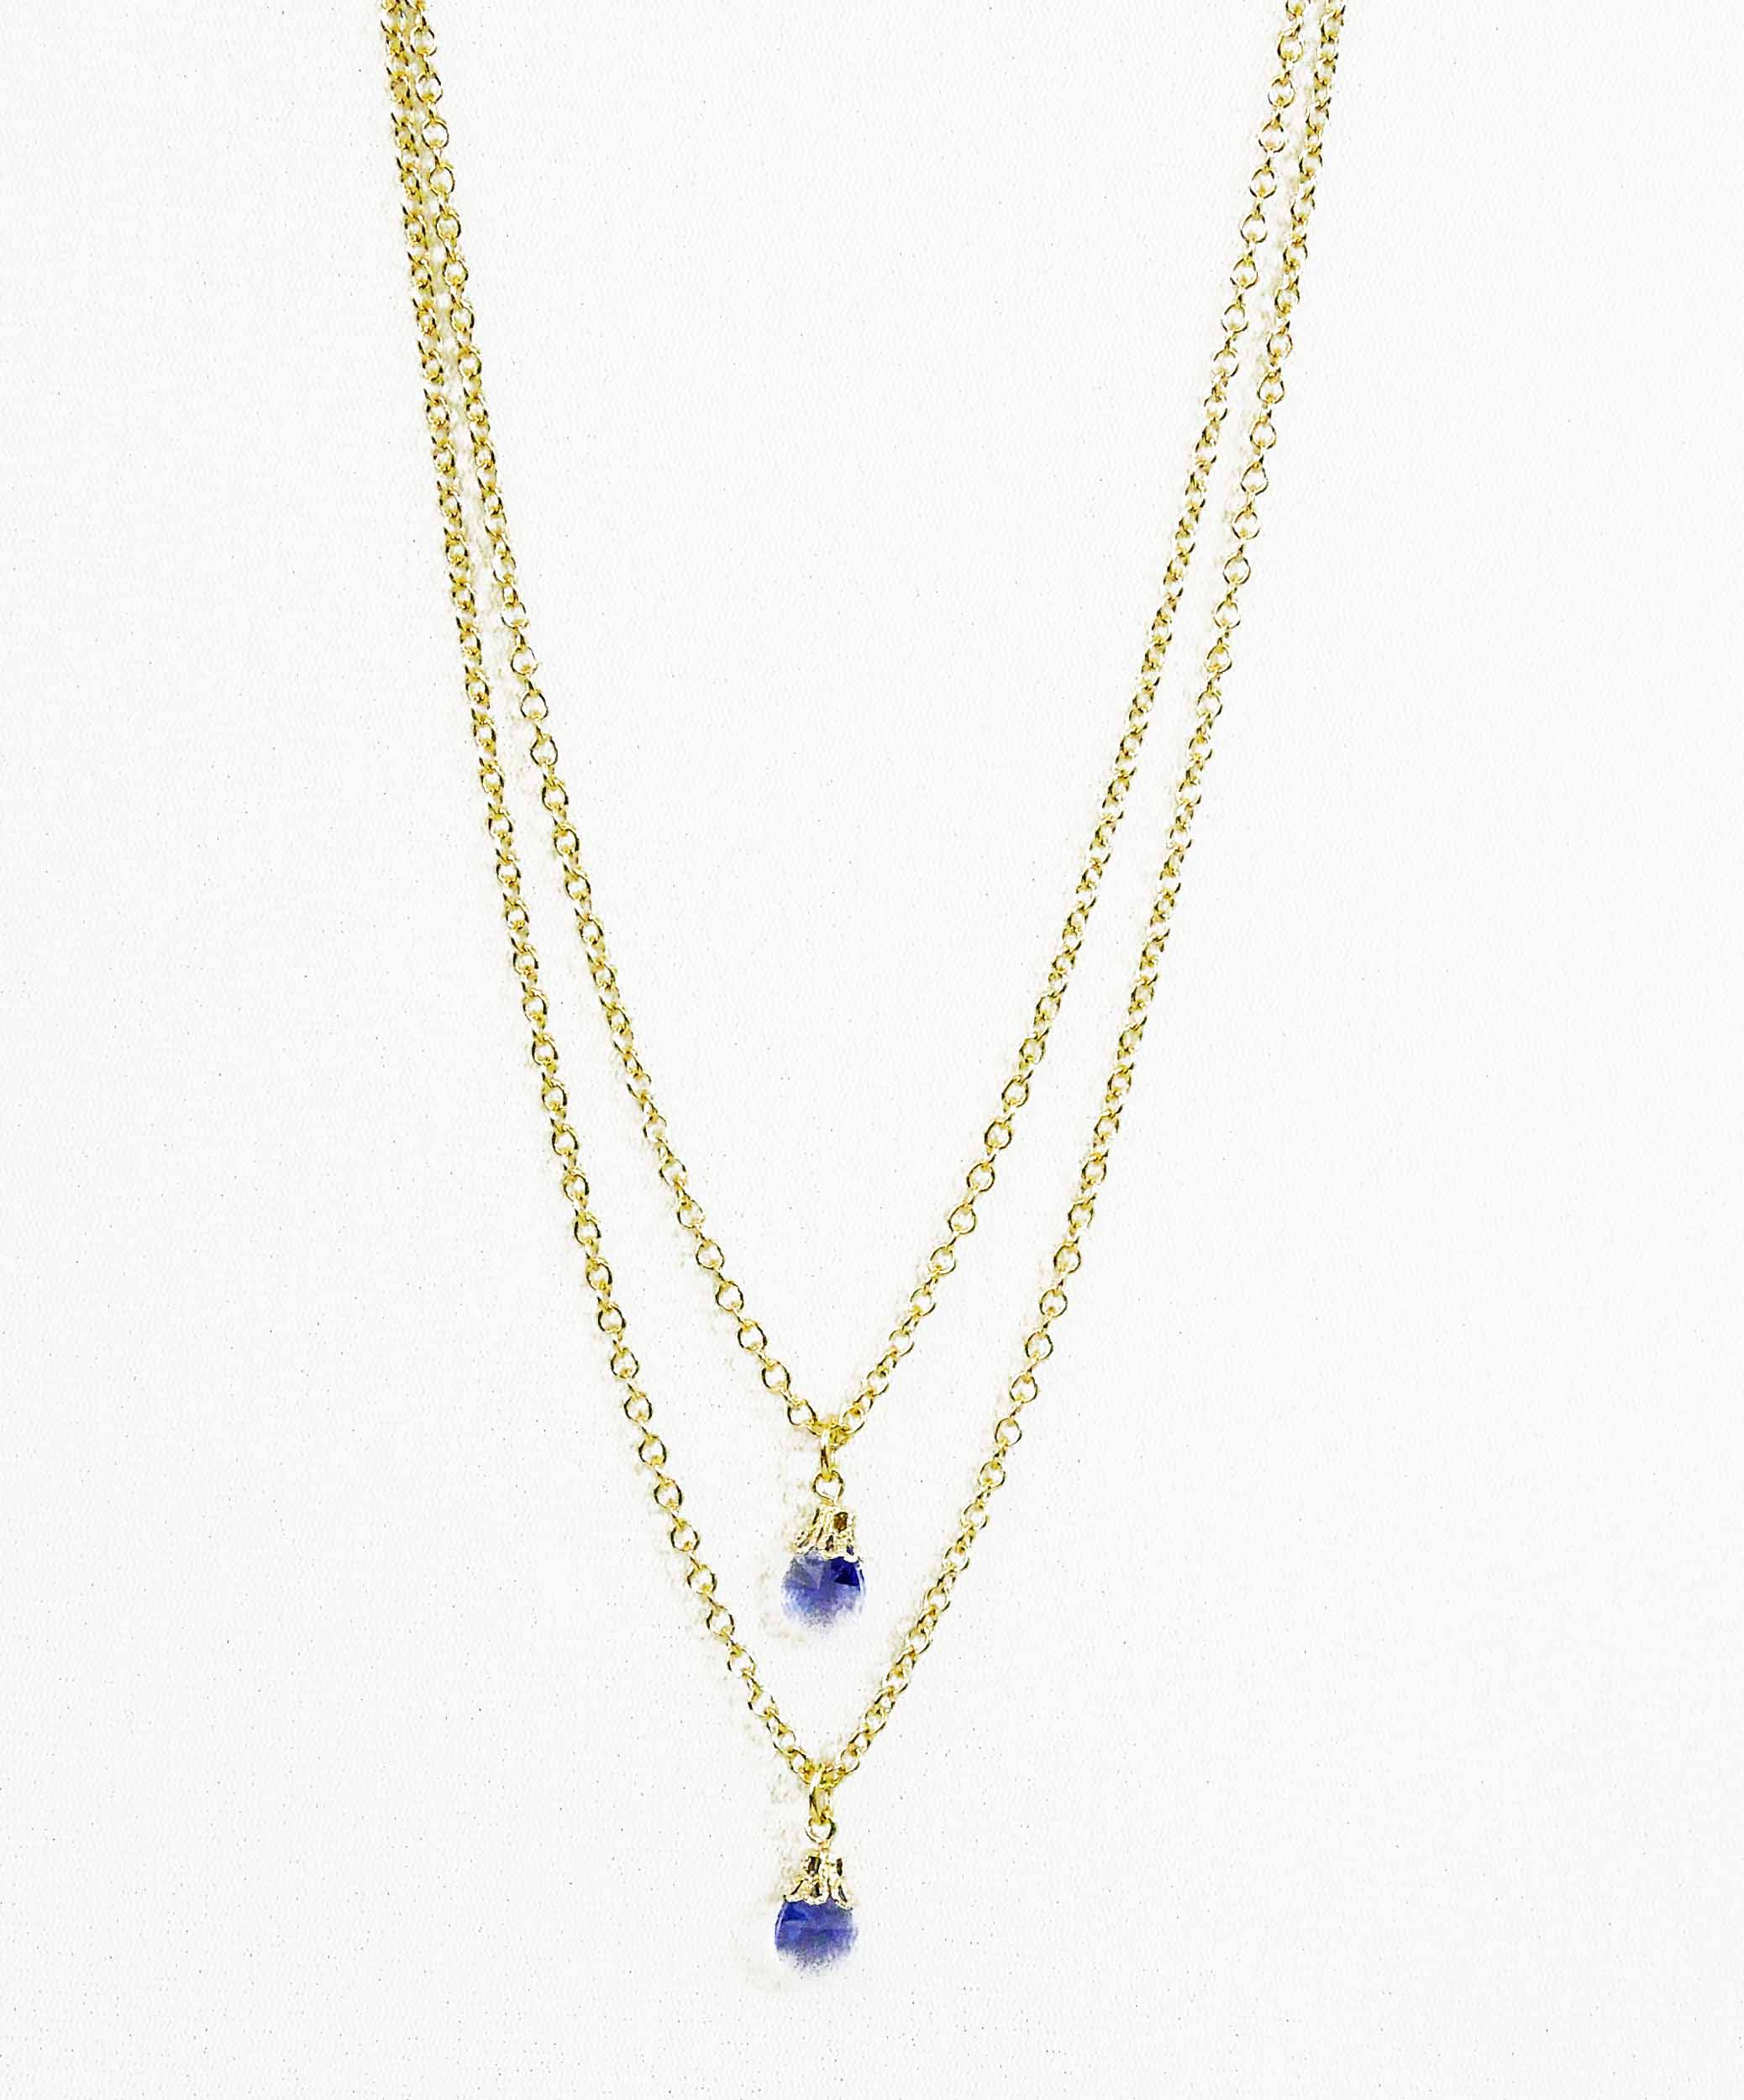 trillion karimi img gold with y editdec necklace lariat tanzanite shahla products birthstone